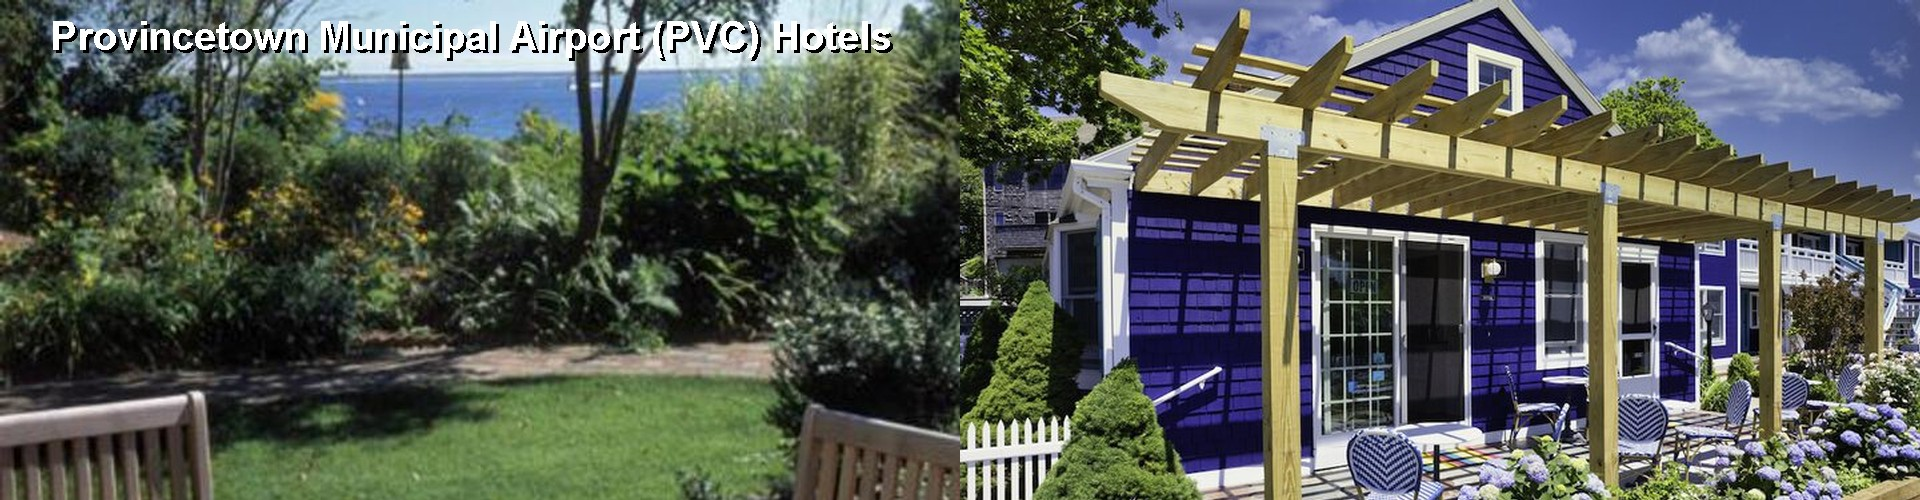 5 Best Hotels near Provincetown Municipal Airport (PVC)